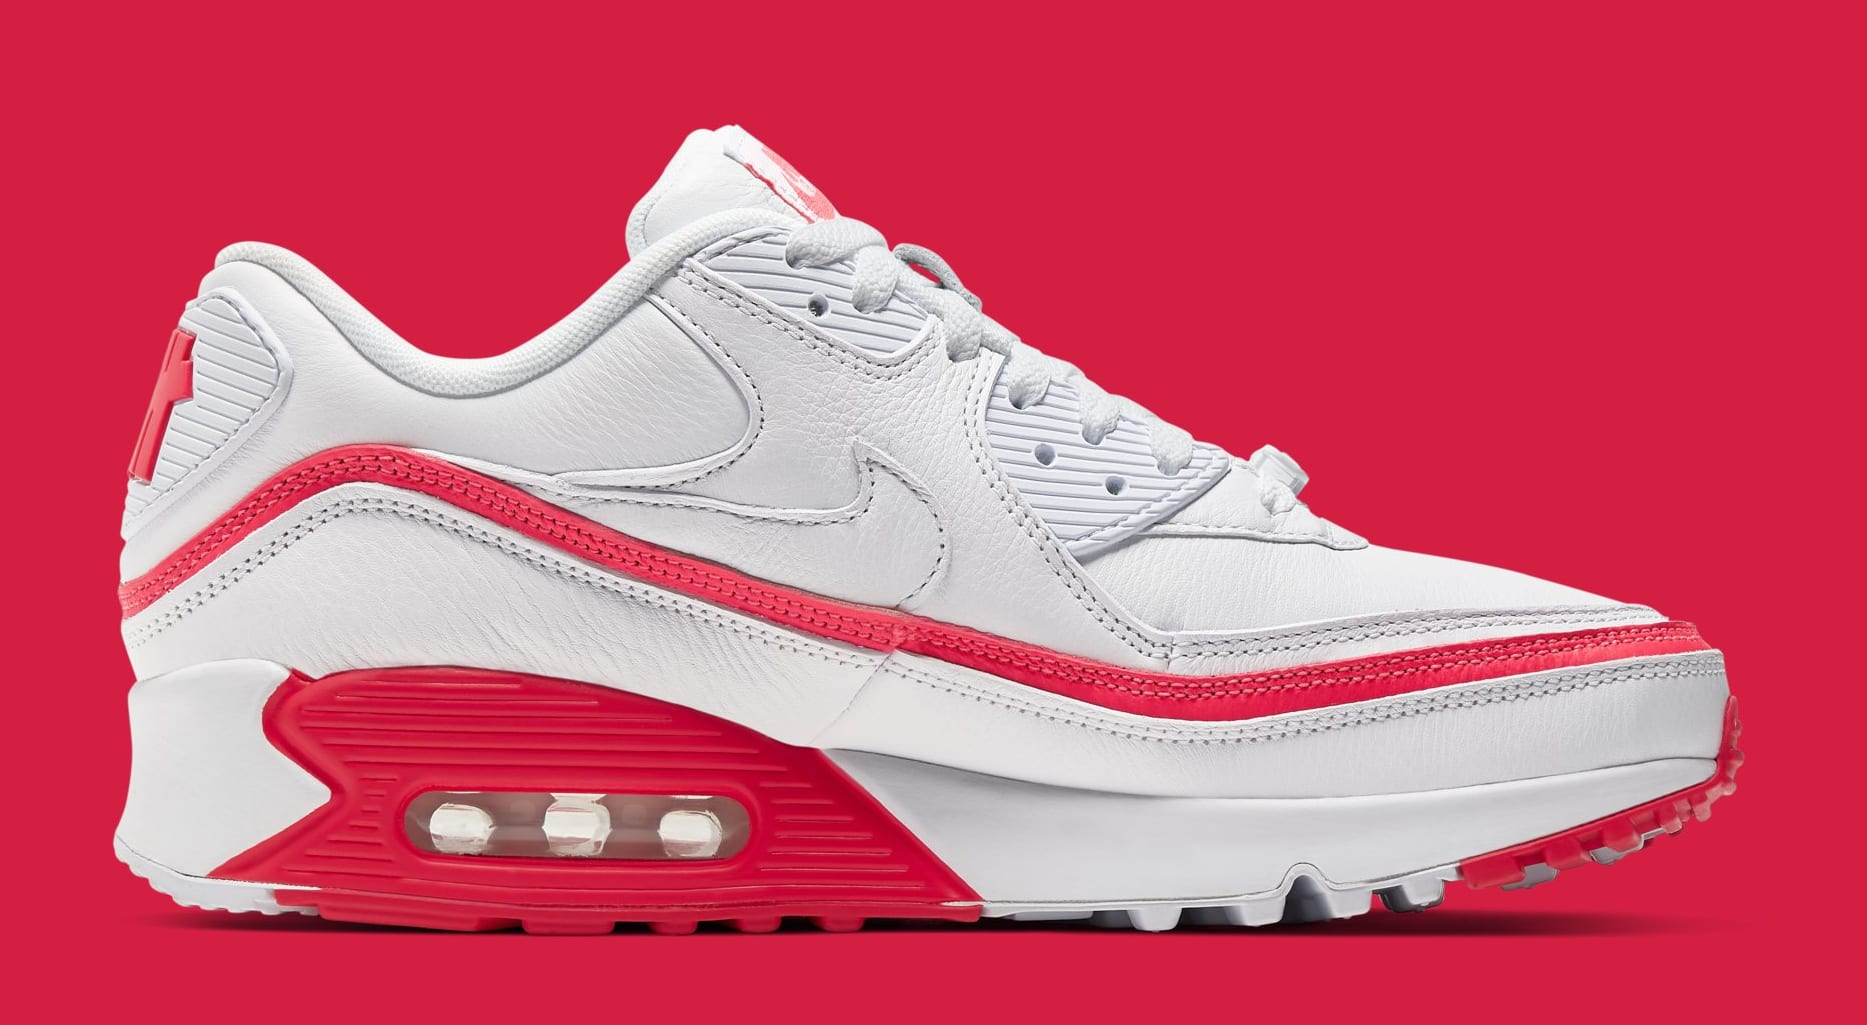 undefeated-nike-air-max-90-white-solar-red-cj7197-103-medial